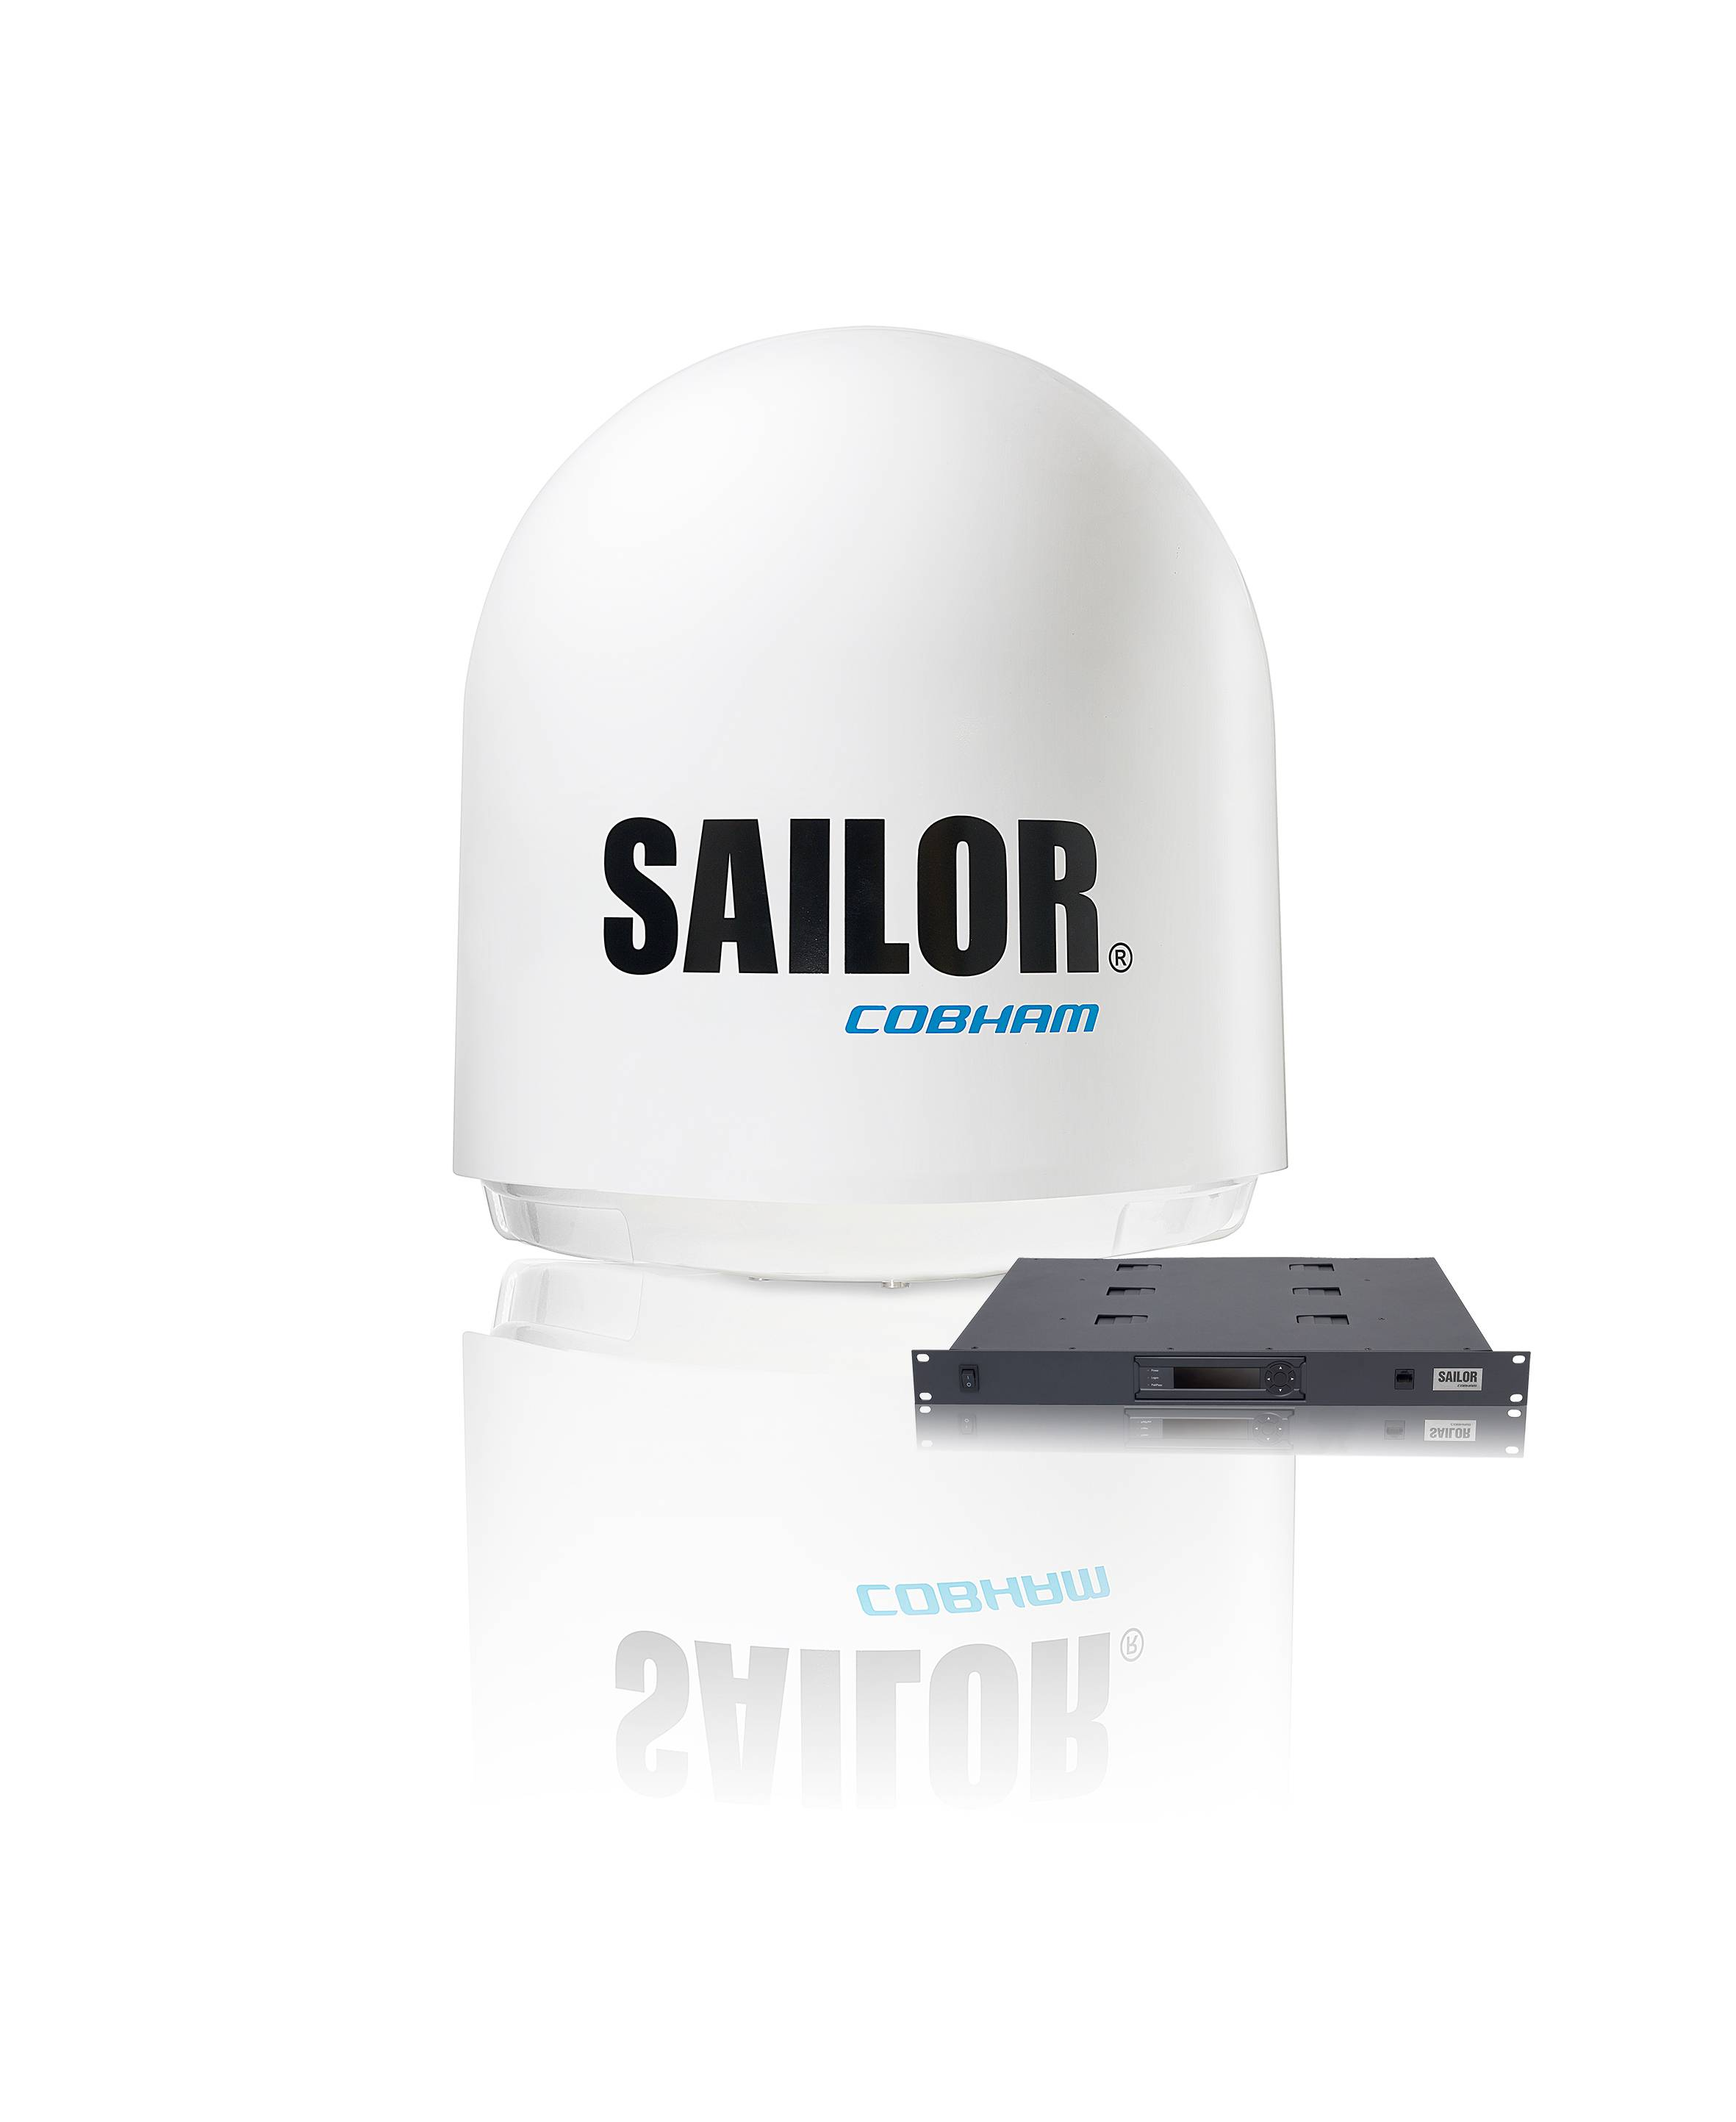 SAILOR 900 VSAT High Power